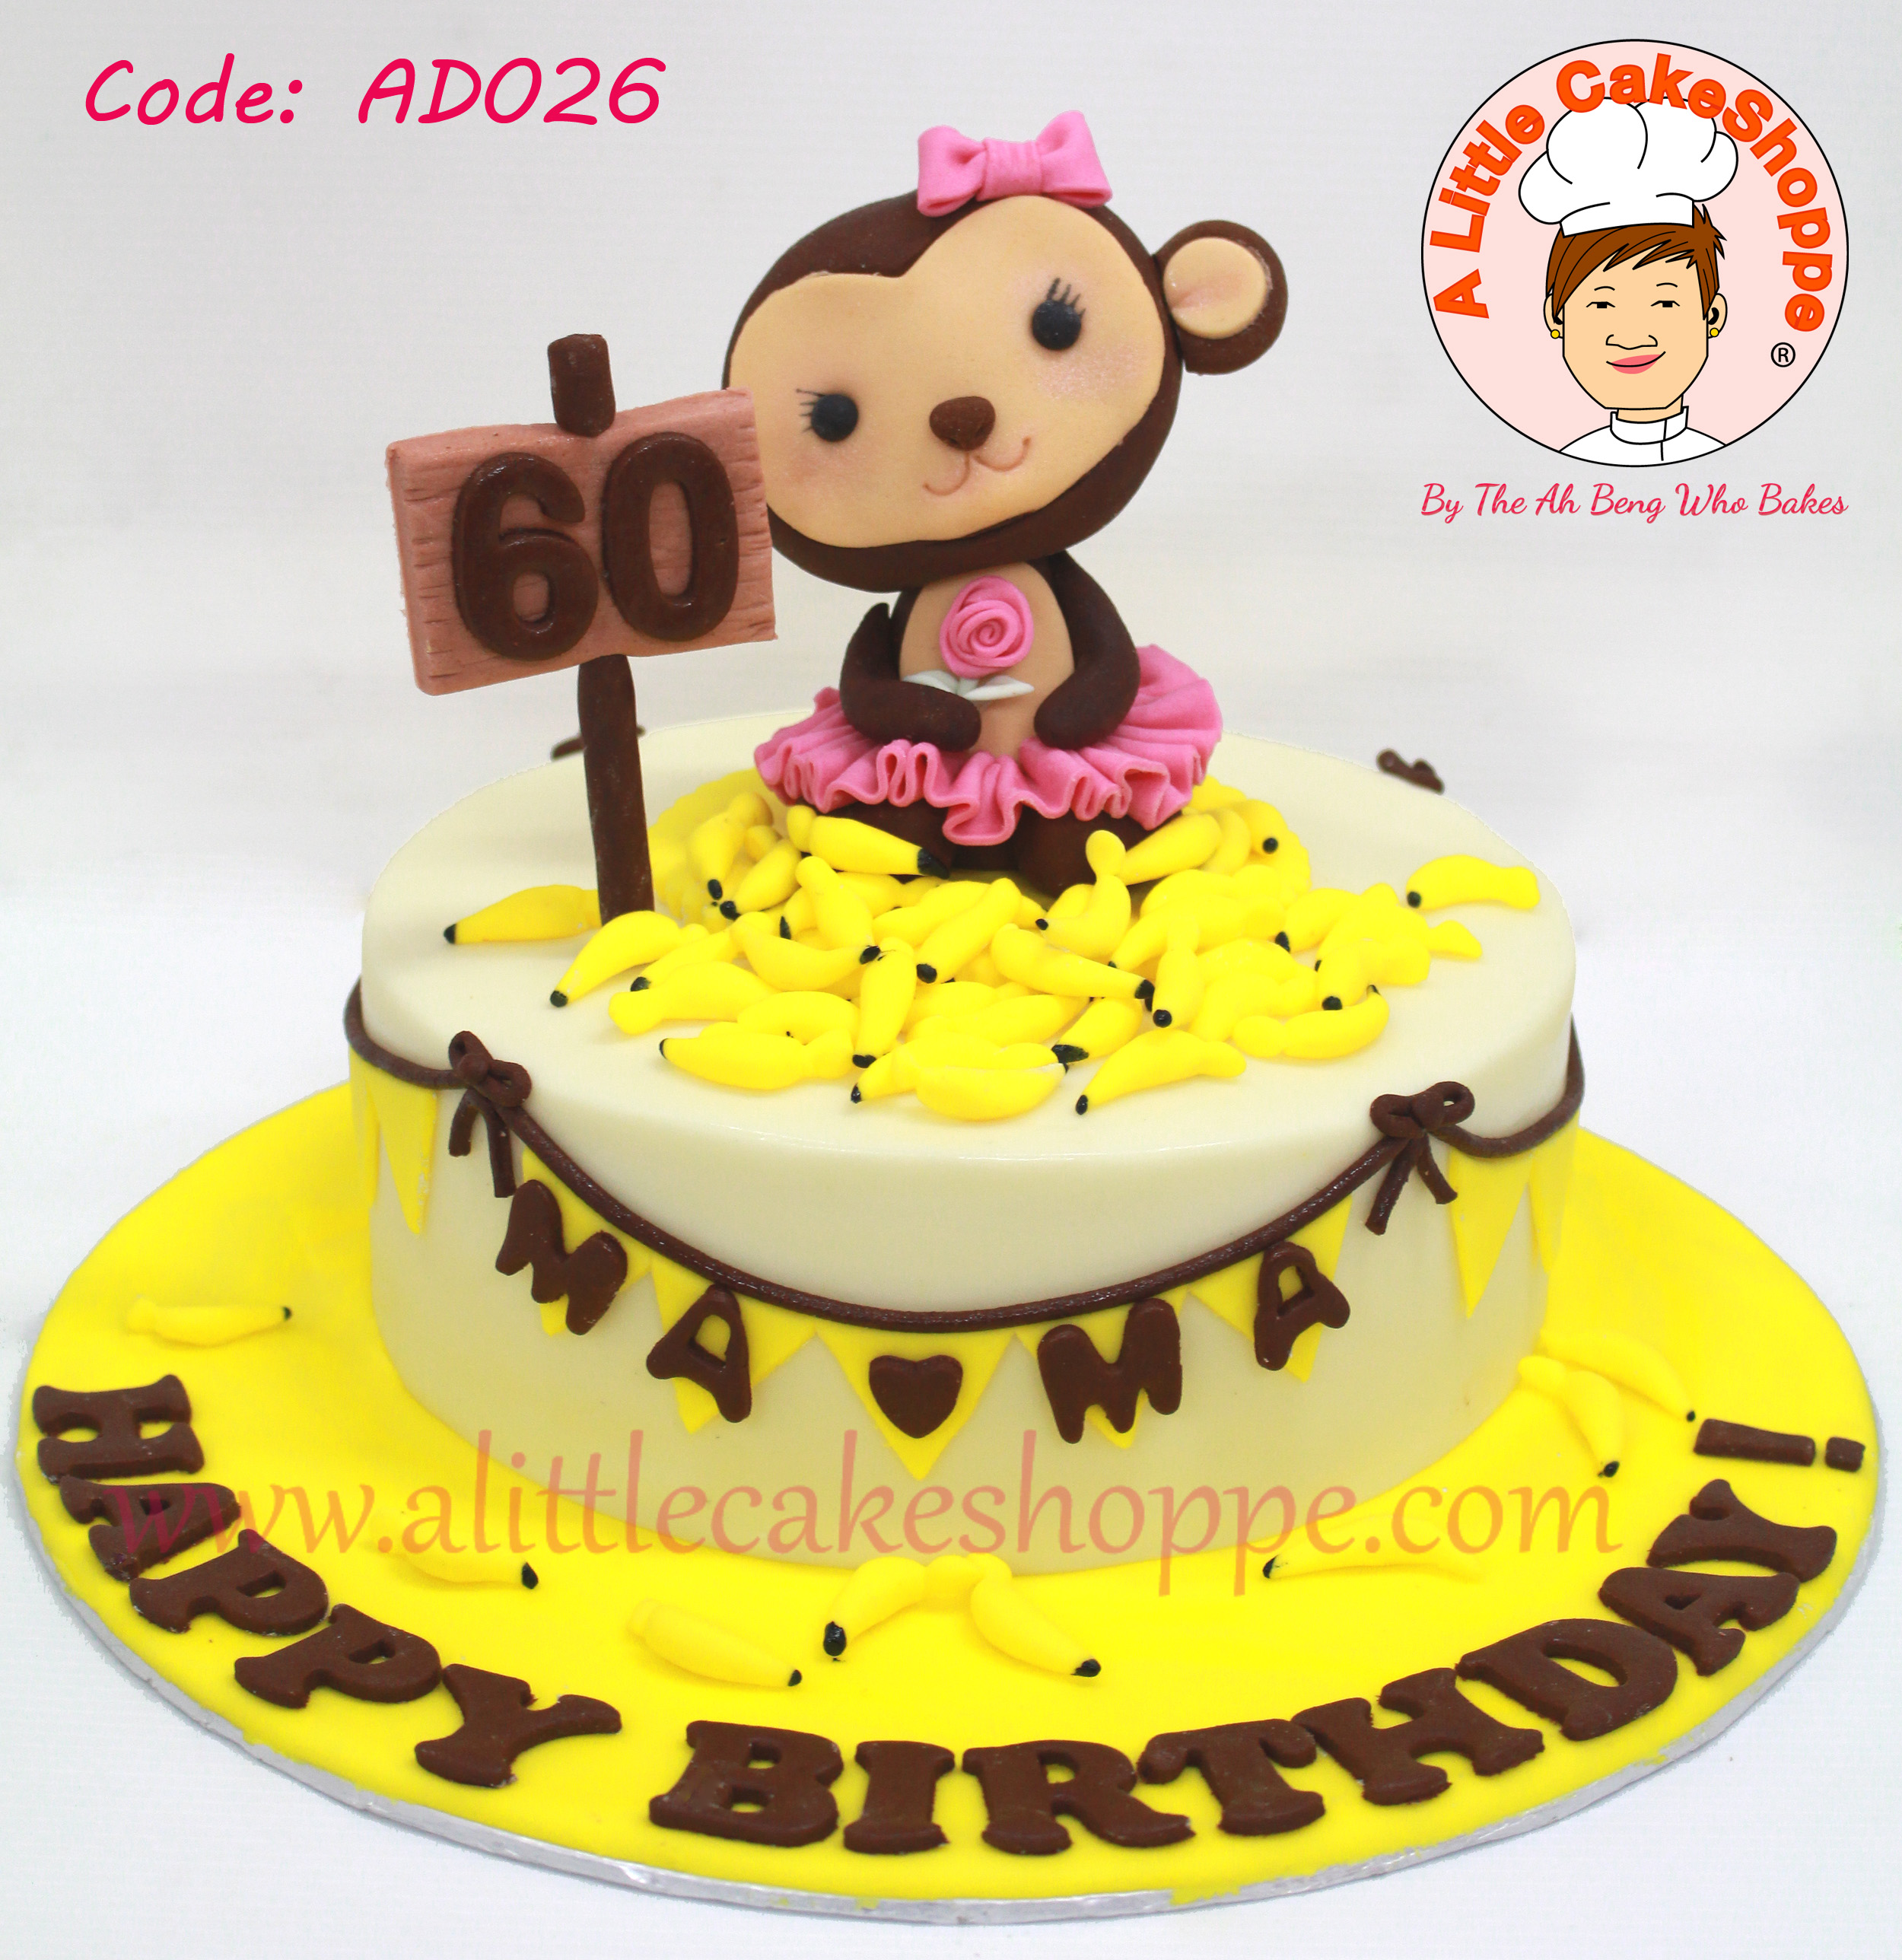 Code: AD026 | A Little CakeShoppe - Singapore Customized 2D and 3D ...